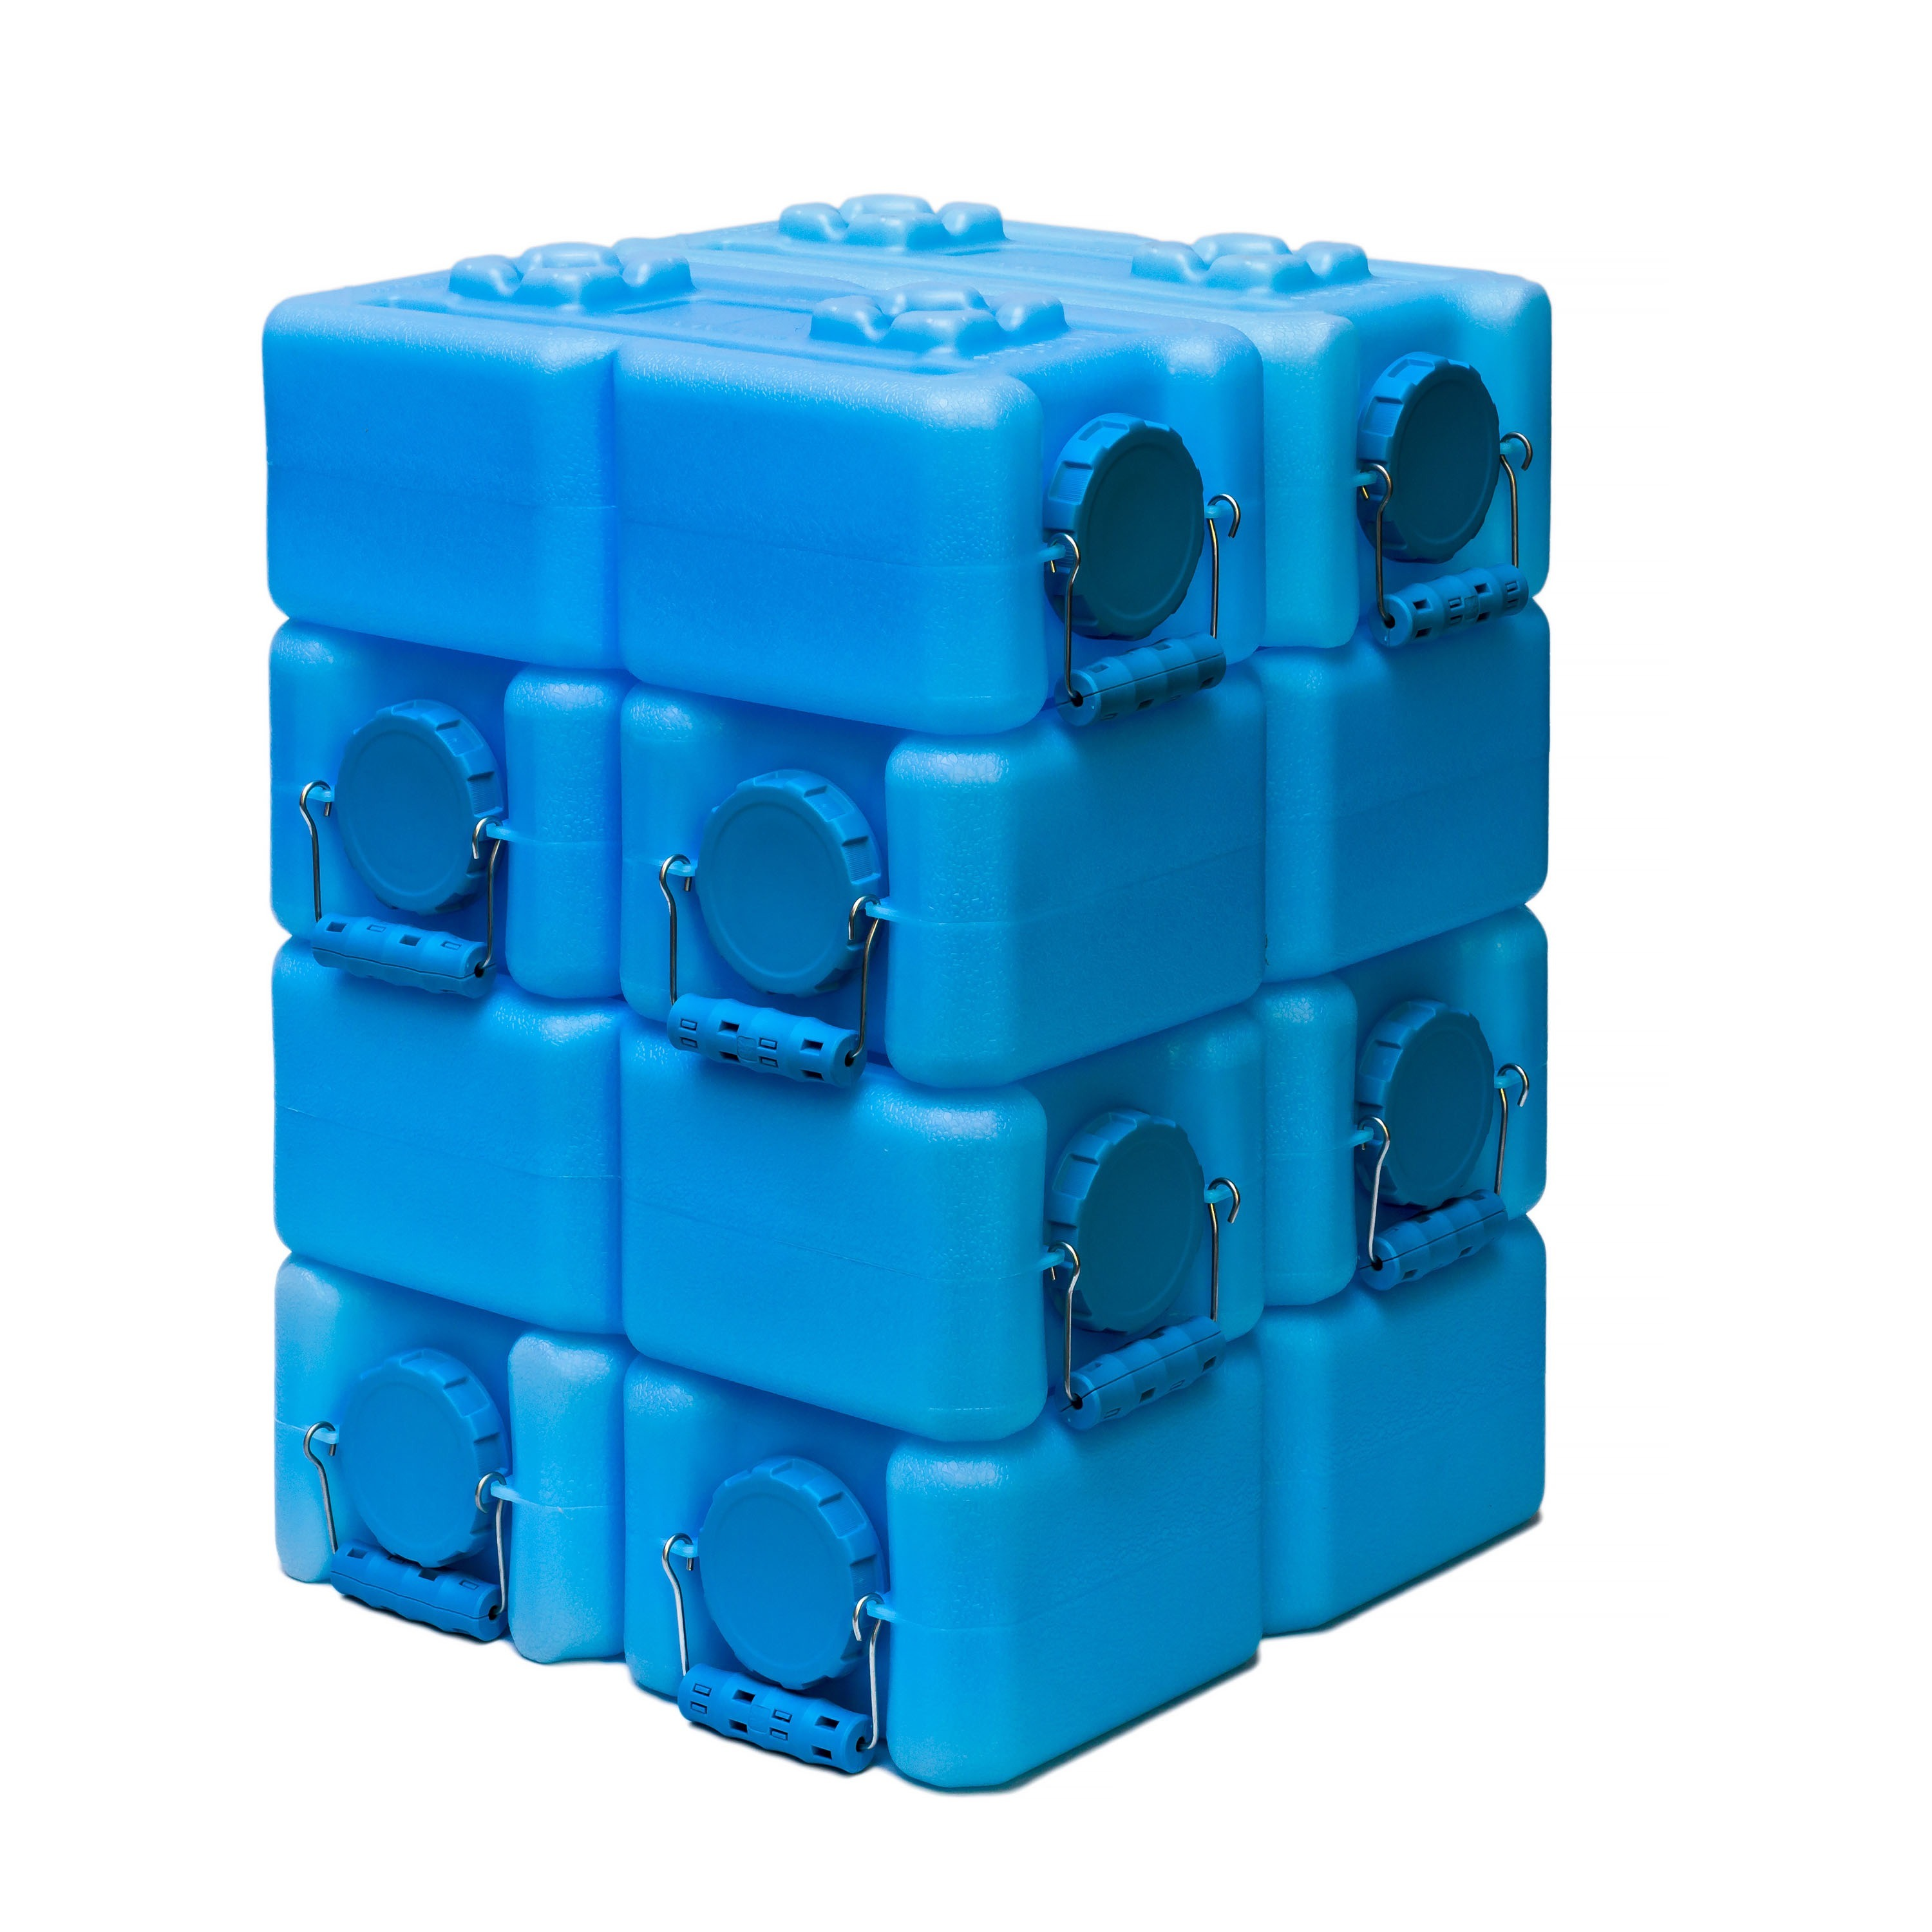 Shop WaterBrick Blue 35 gallon BPA Free Water Storage Container